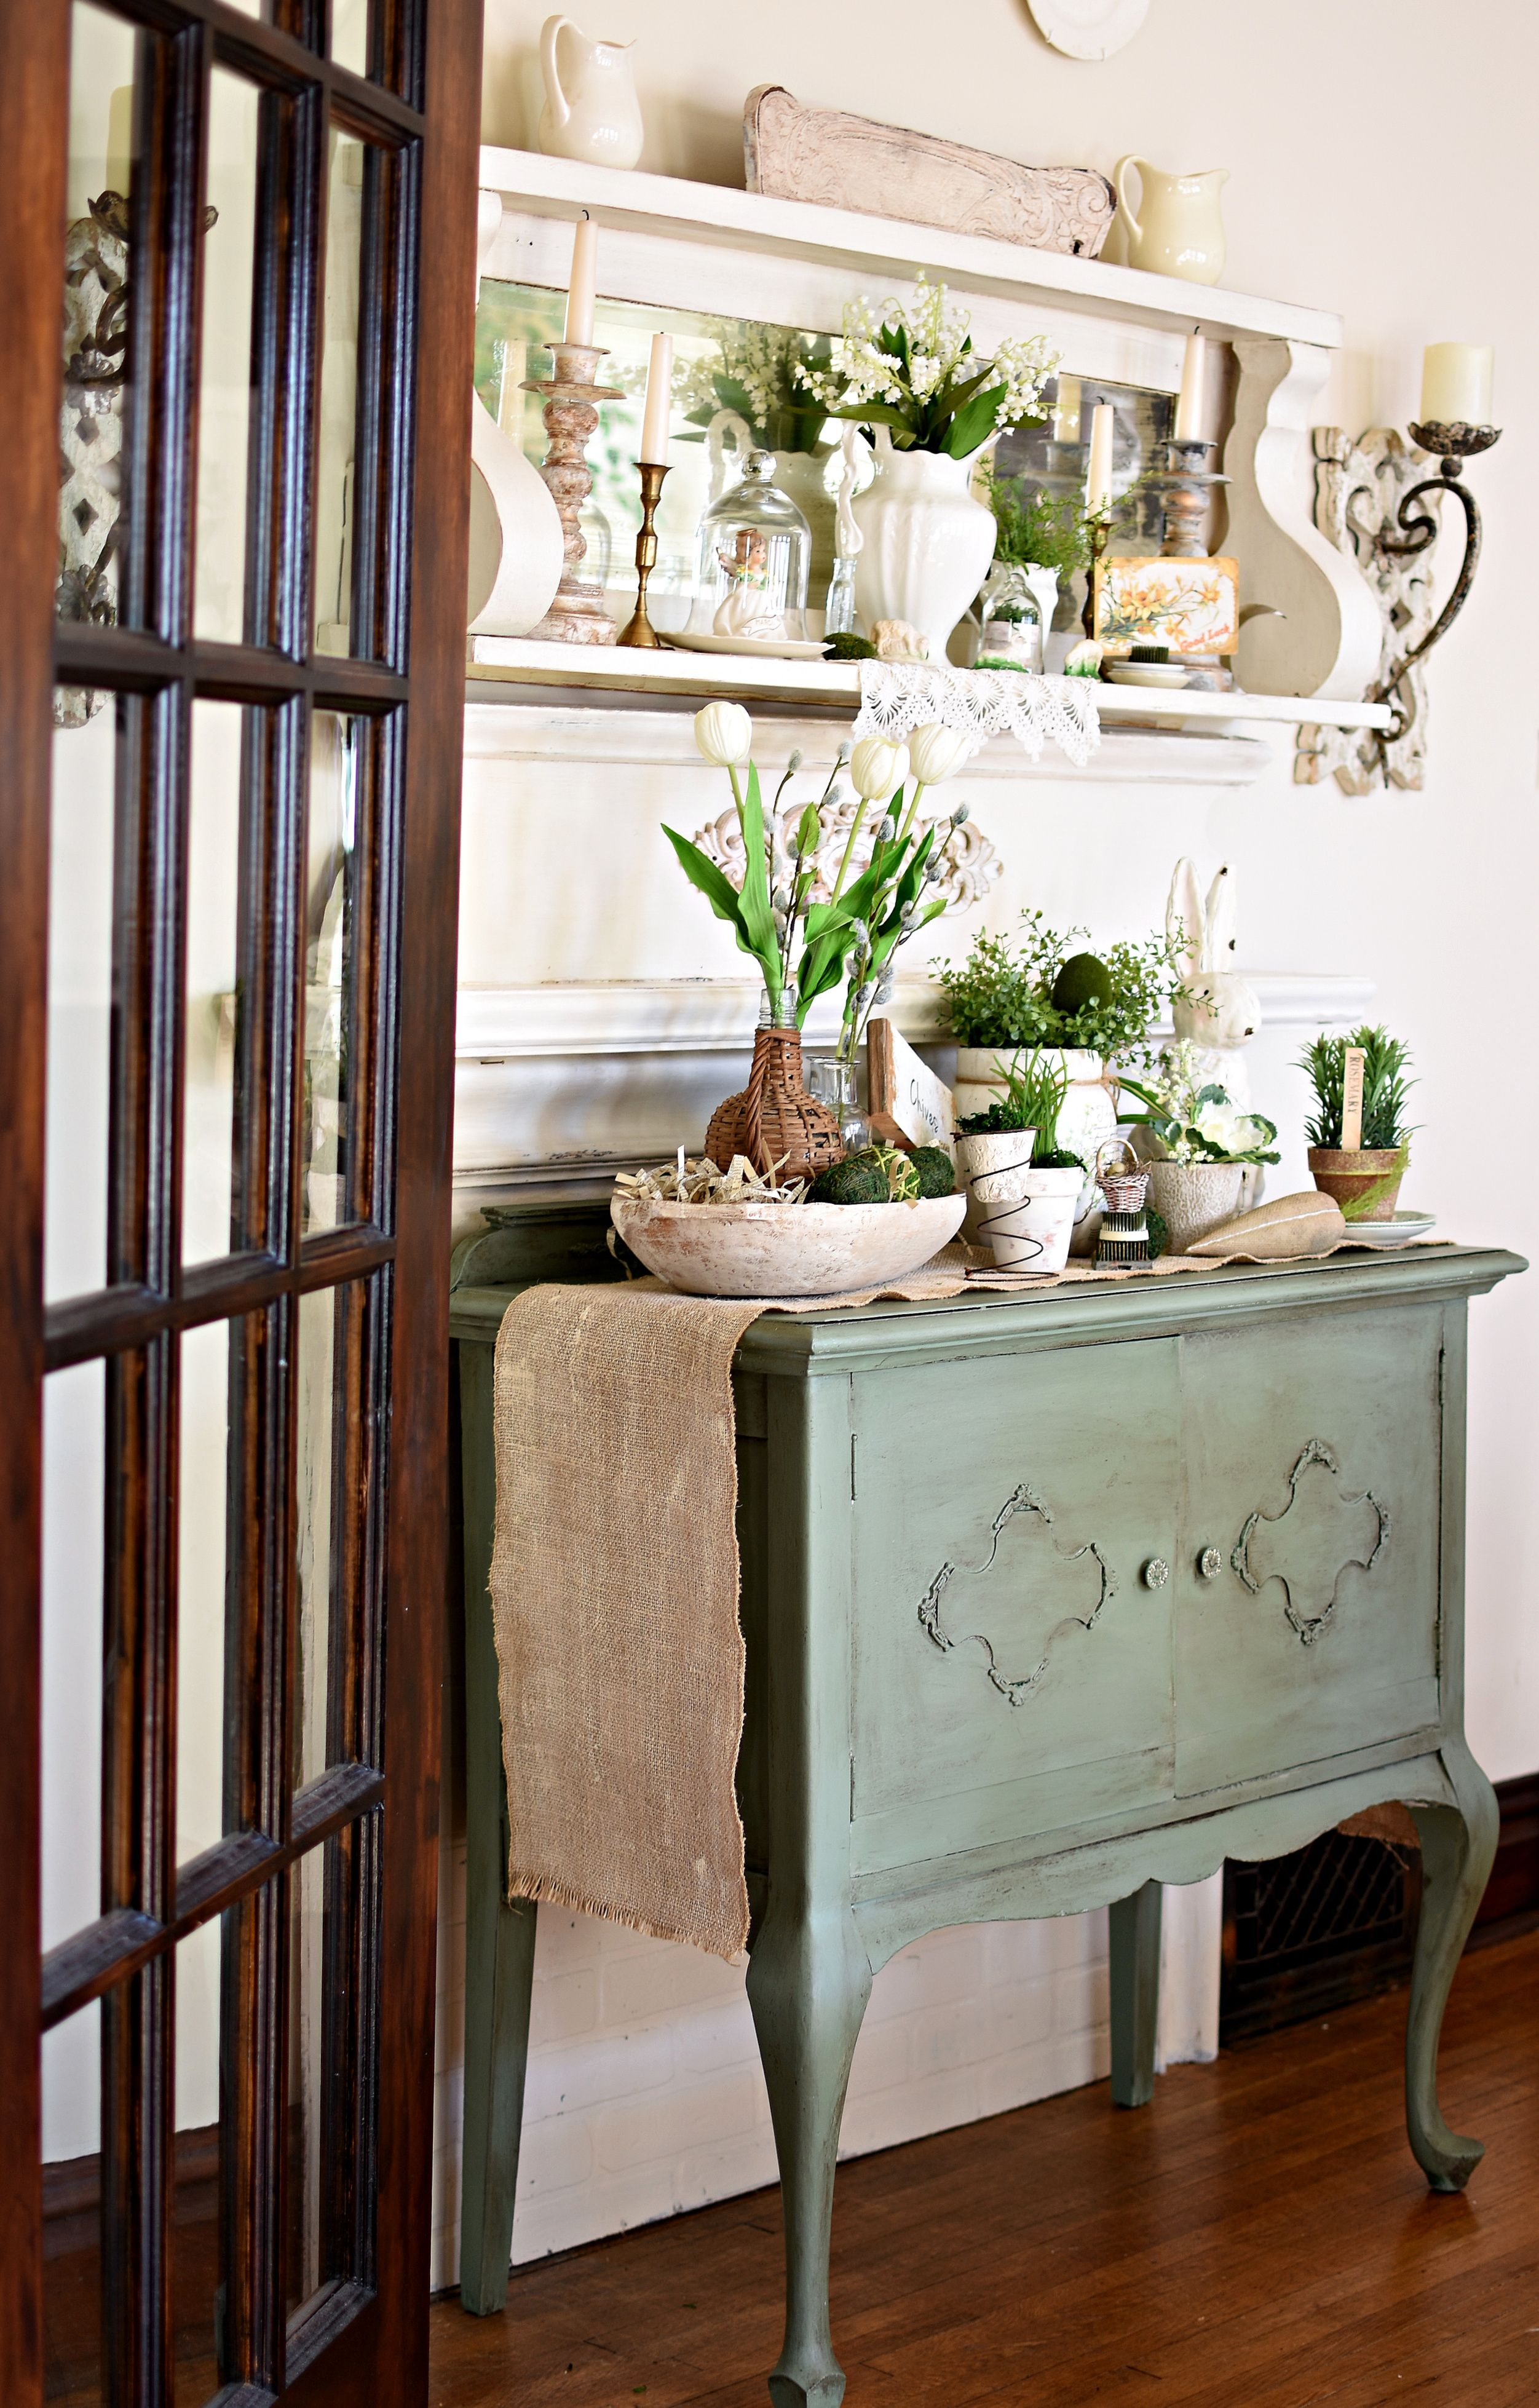 Easy Spring Decorating With Bunnies, Birds, and Blooms